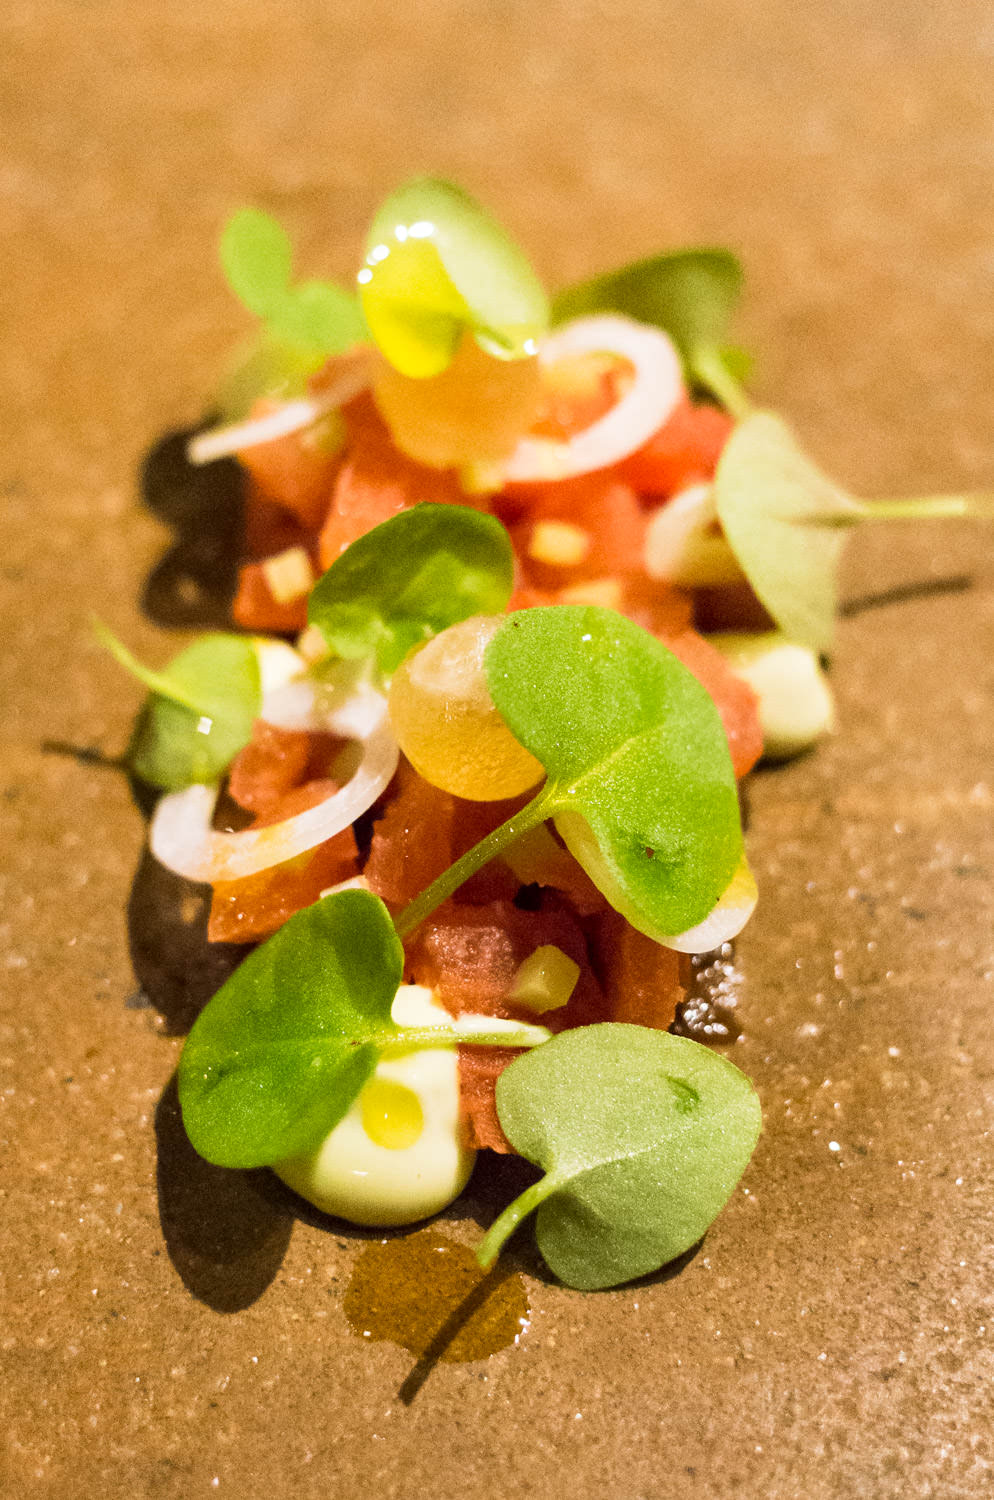 Heritage tomato in coal oil, shallot and sorrel (v)